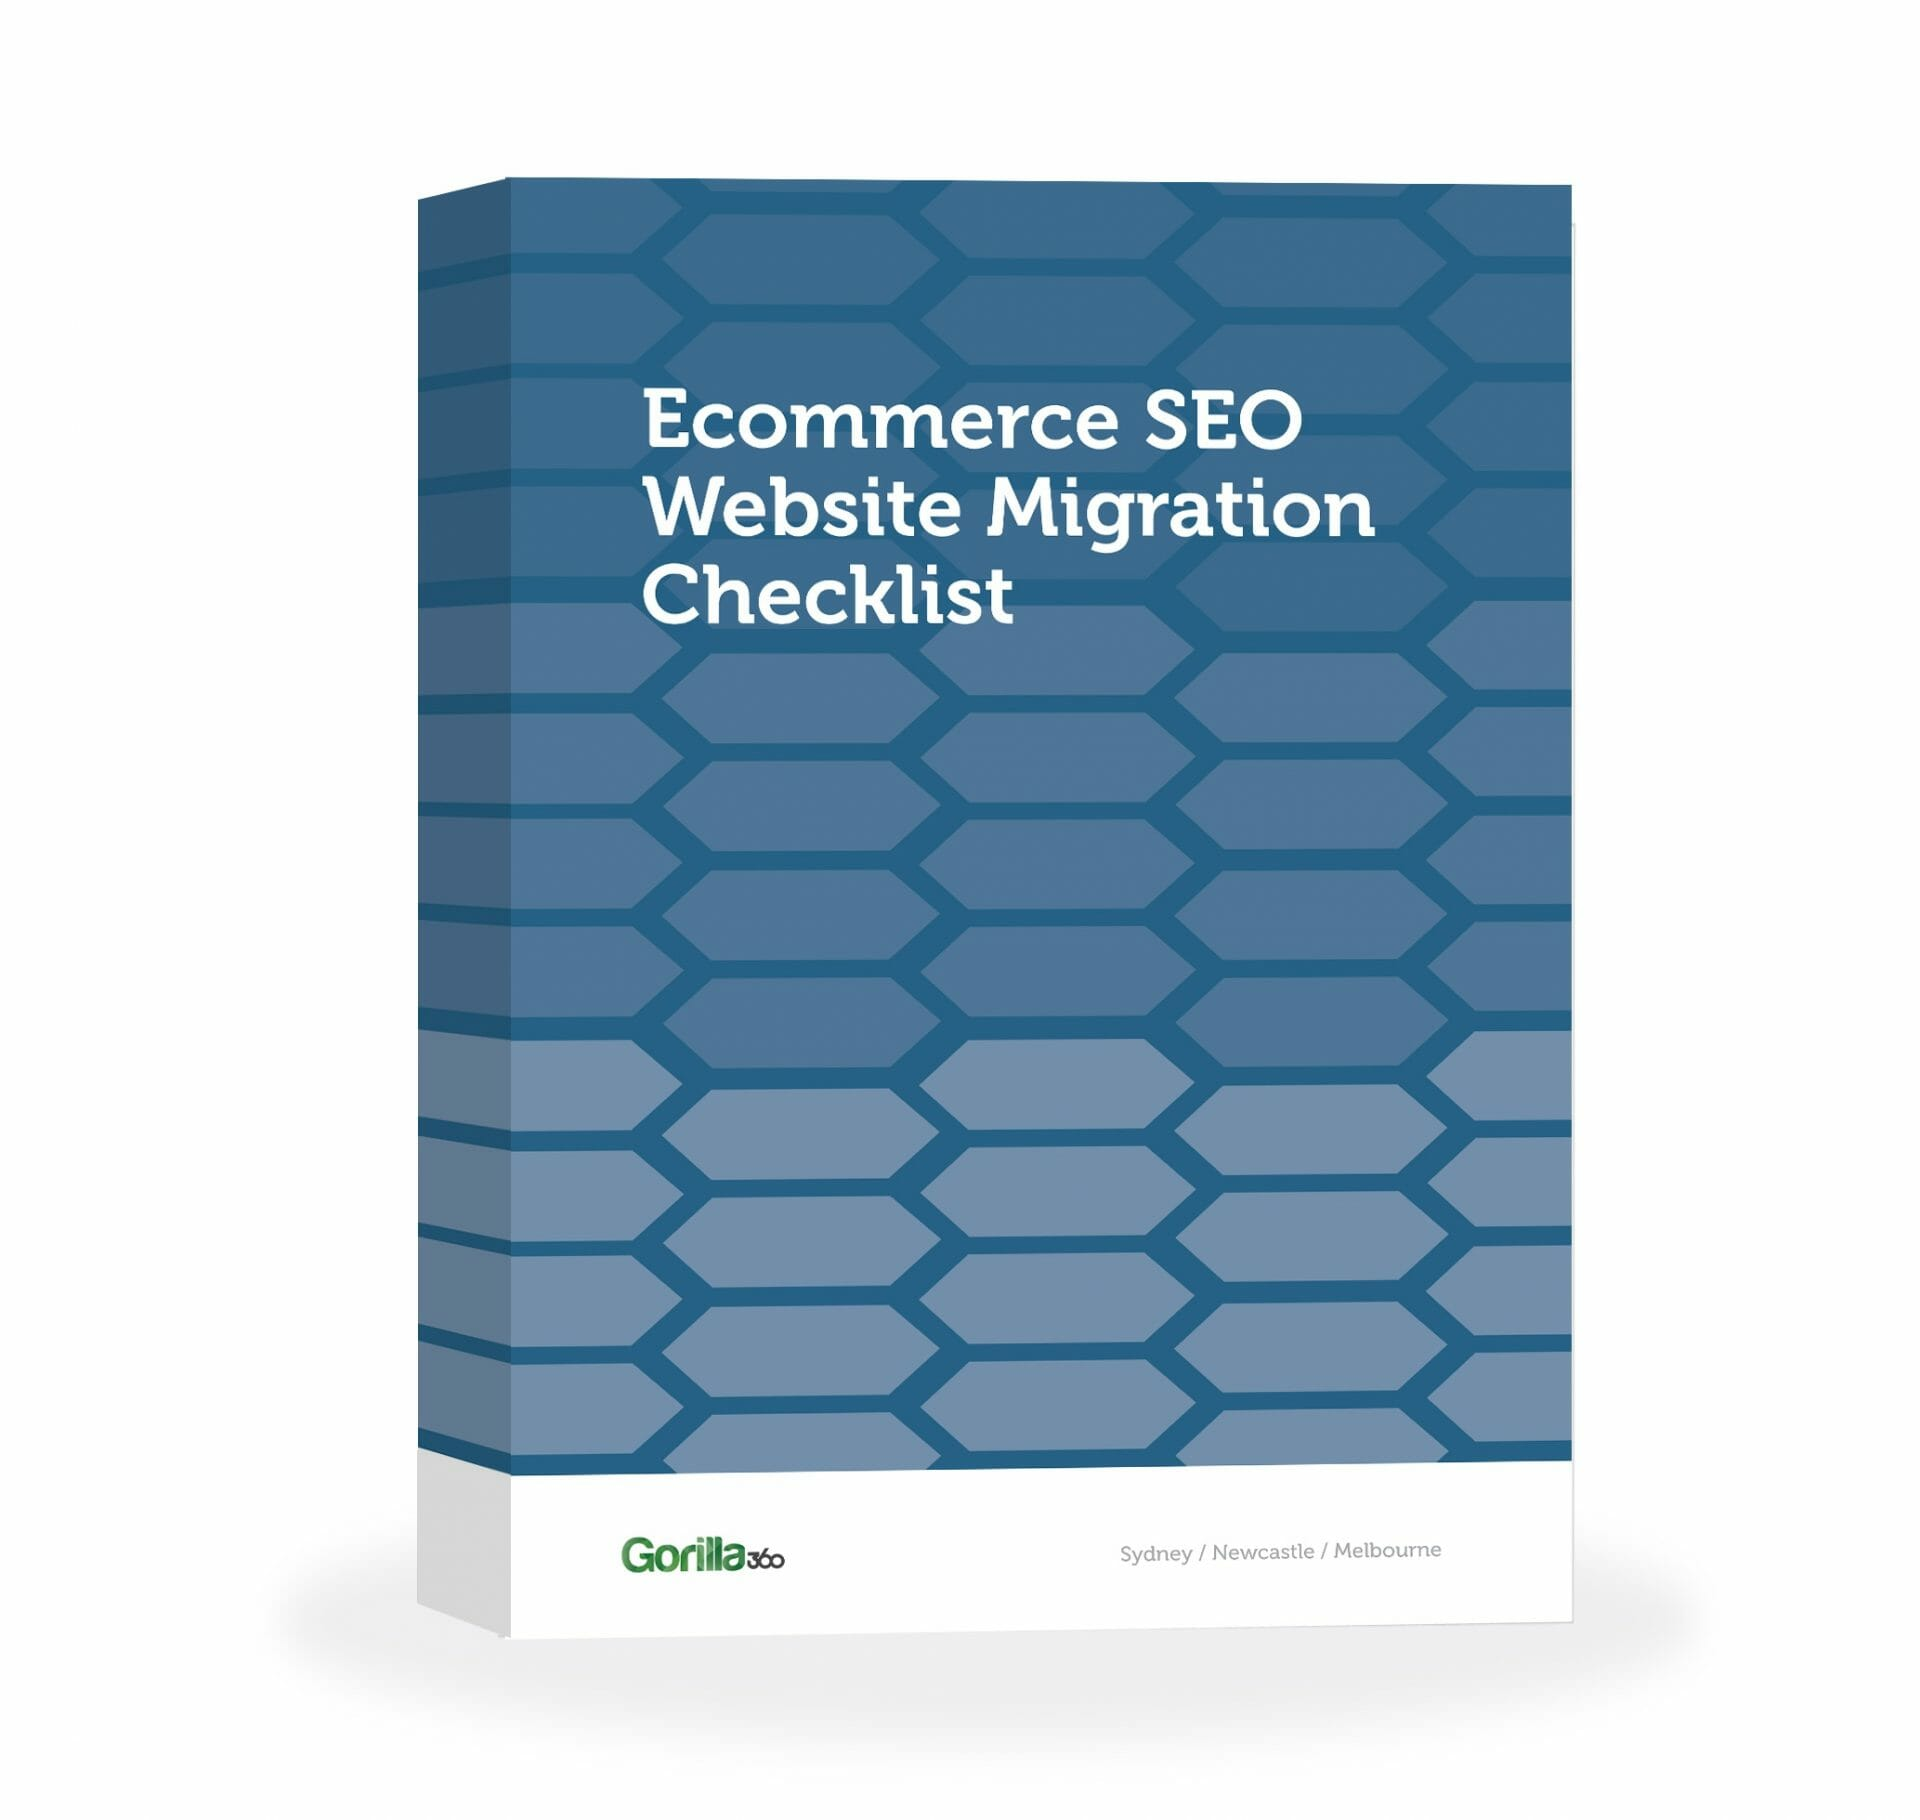 Download_Your_SEO_Migration_Checklist.jpg